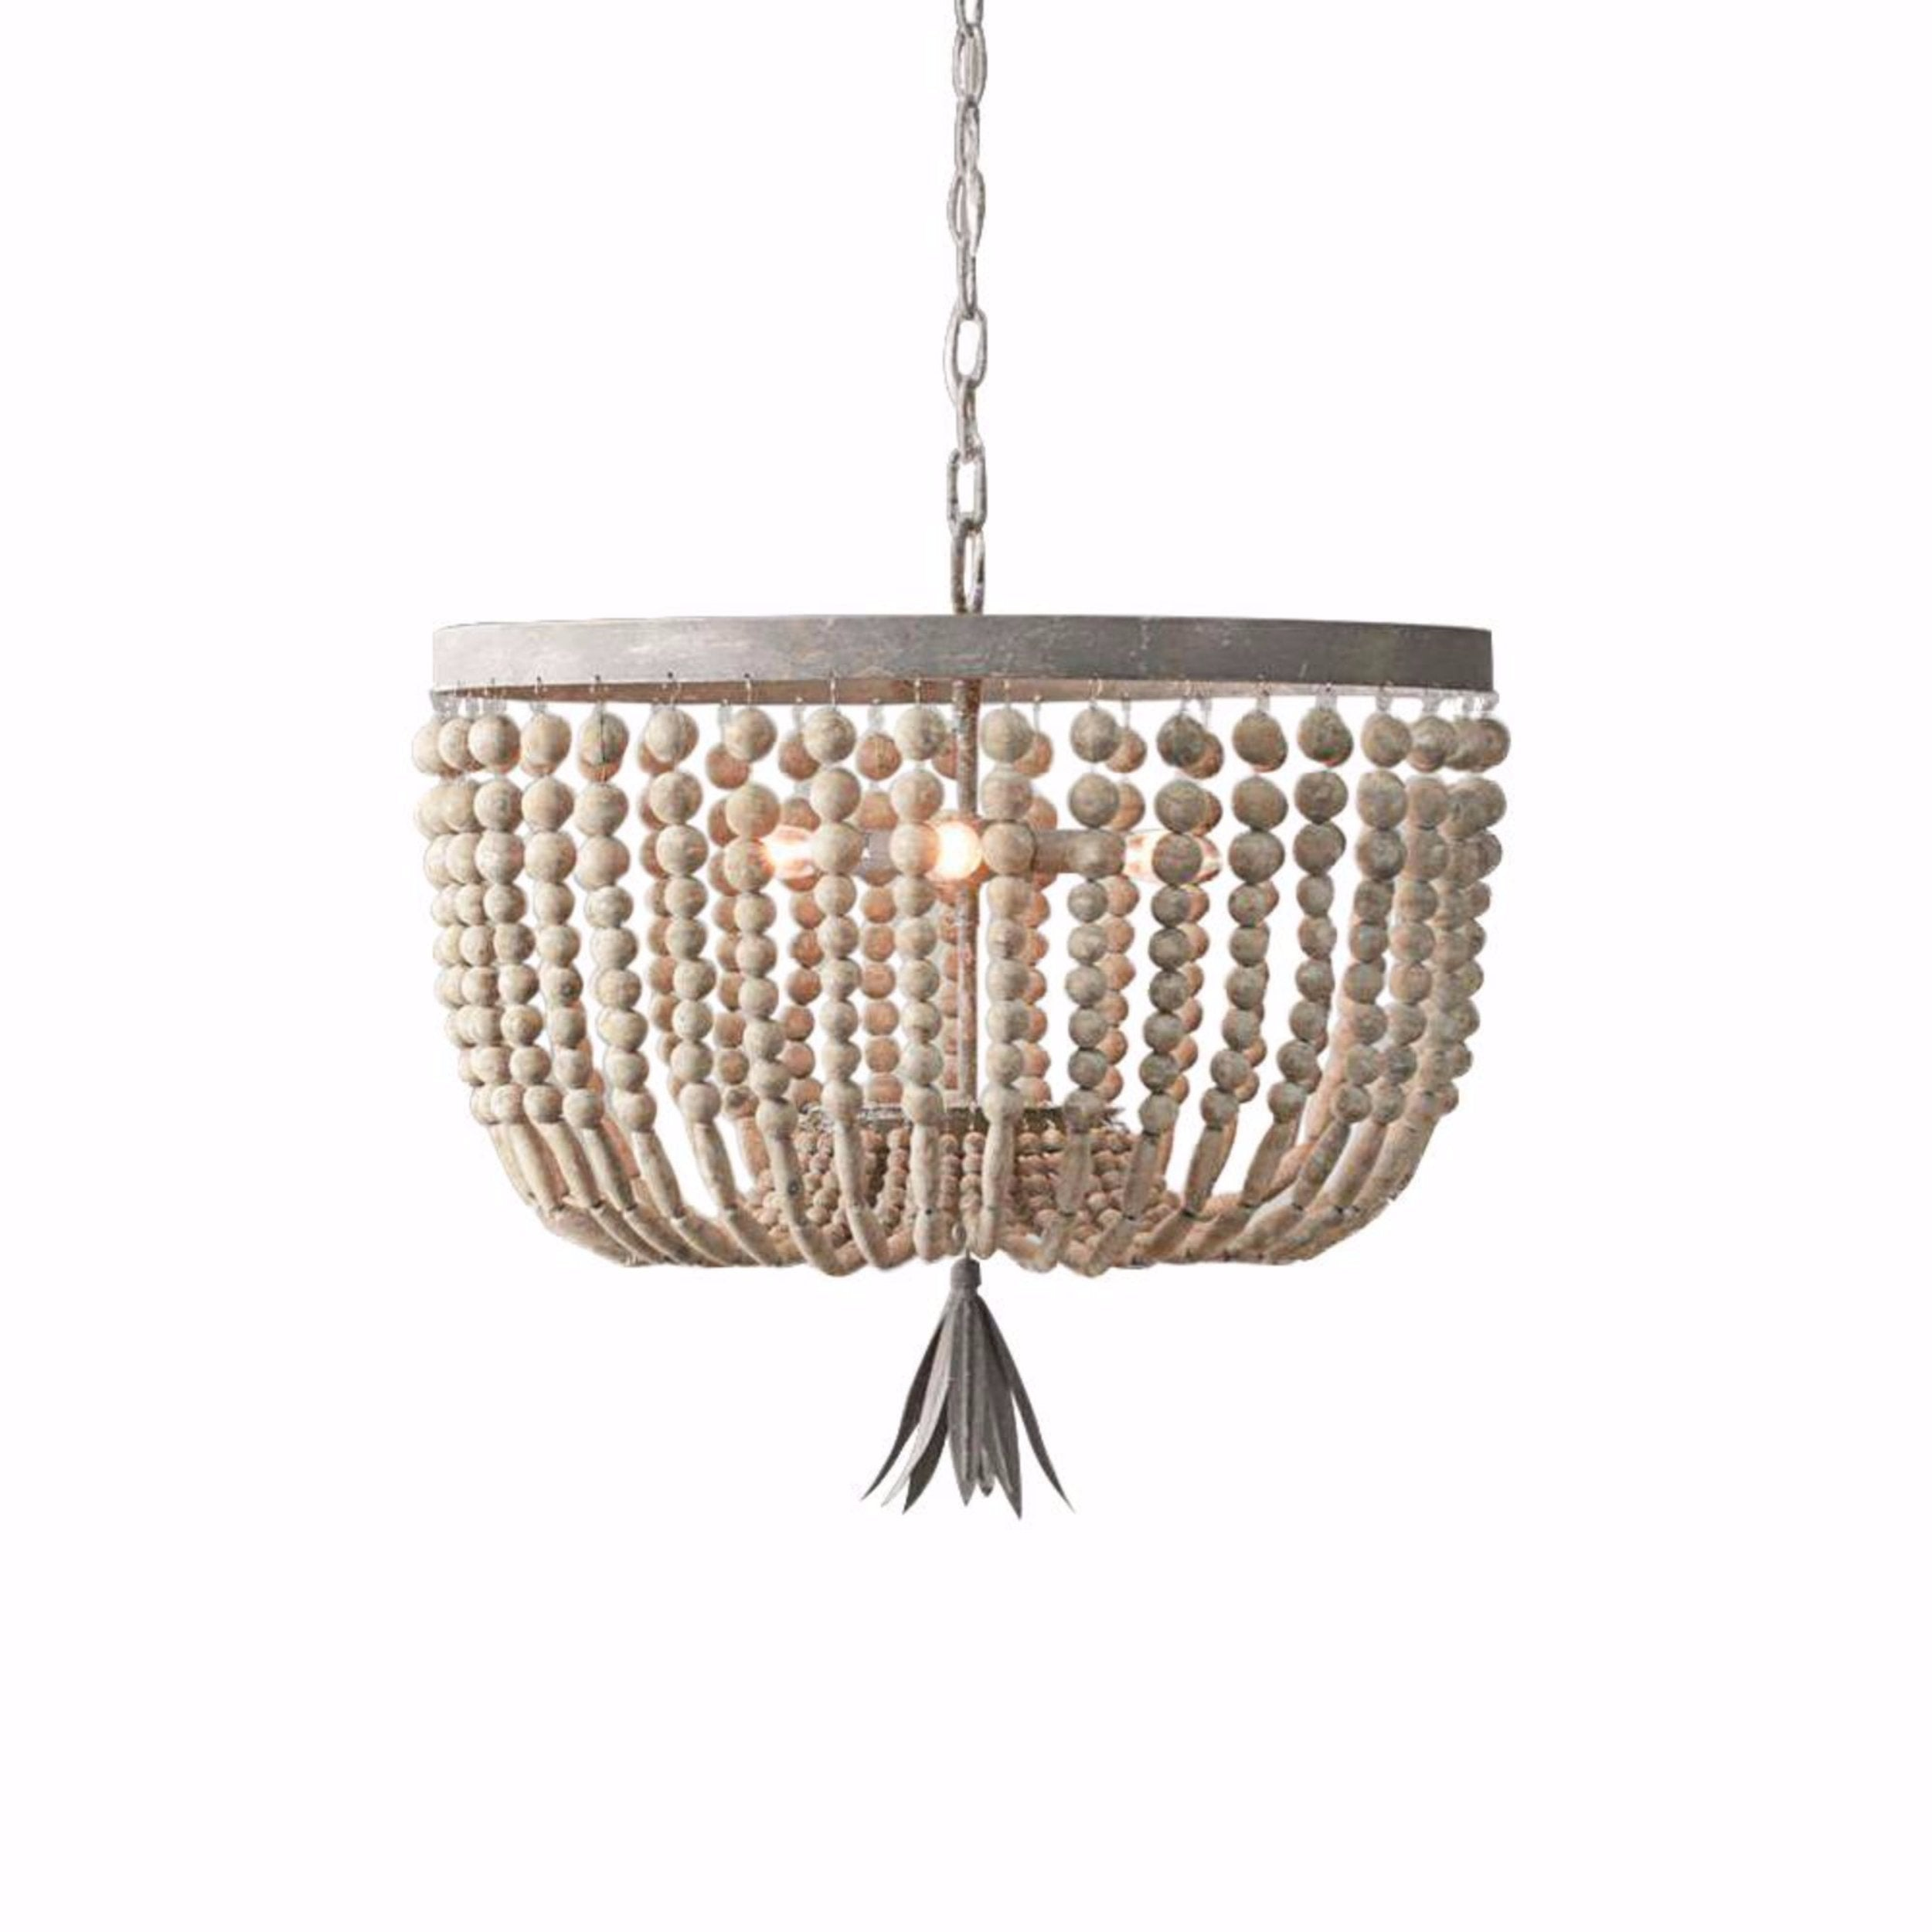 chandelier interiors wooden products empire kayla wood au courant beaded